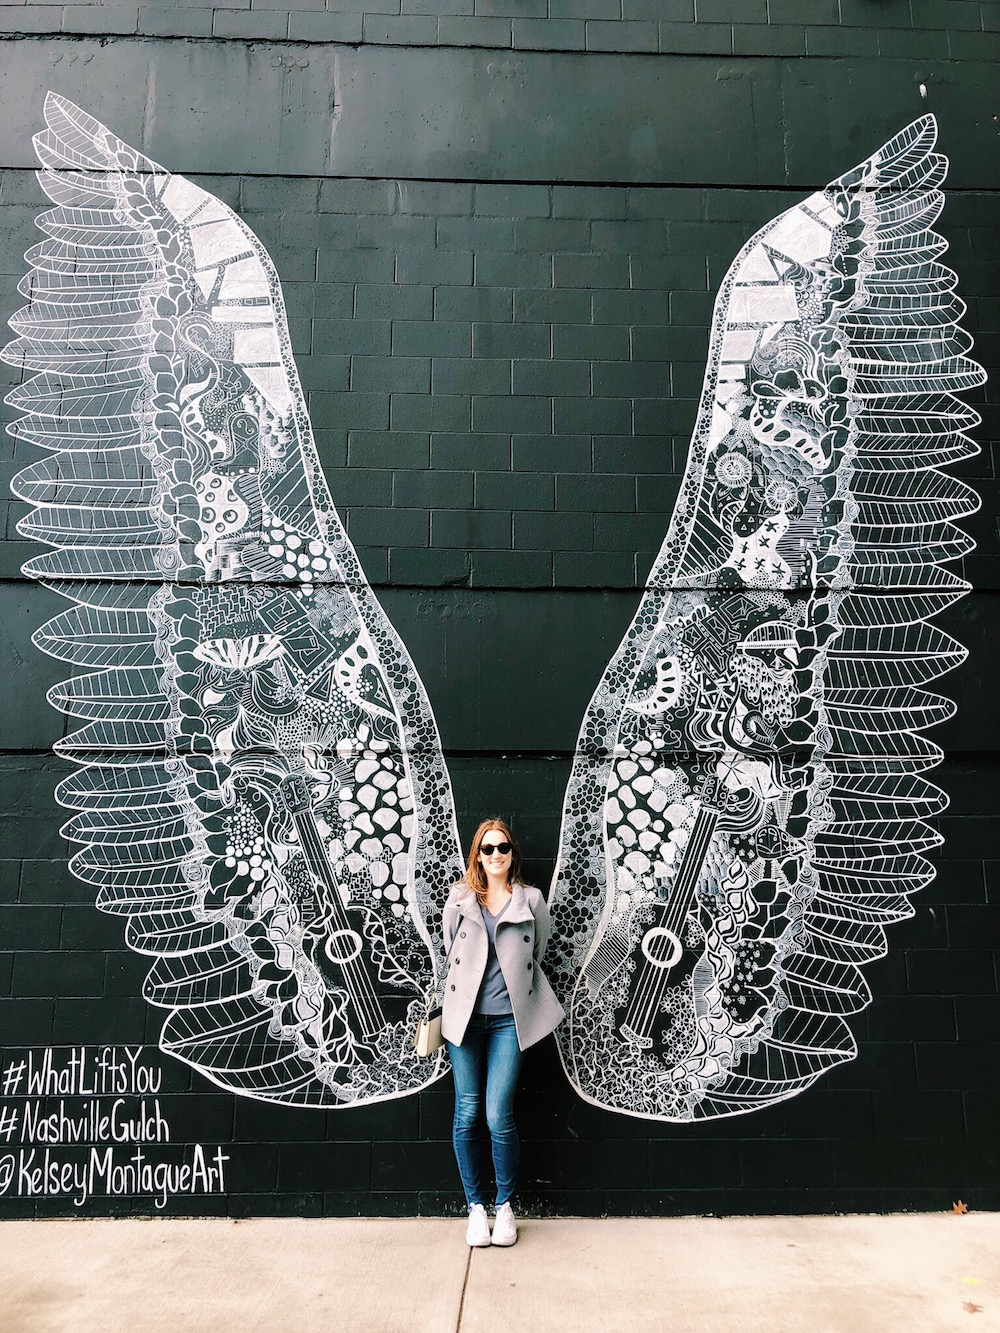 Redhead girl in front of large black white wings